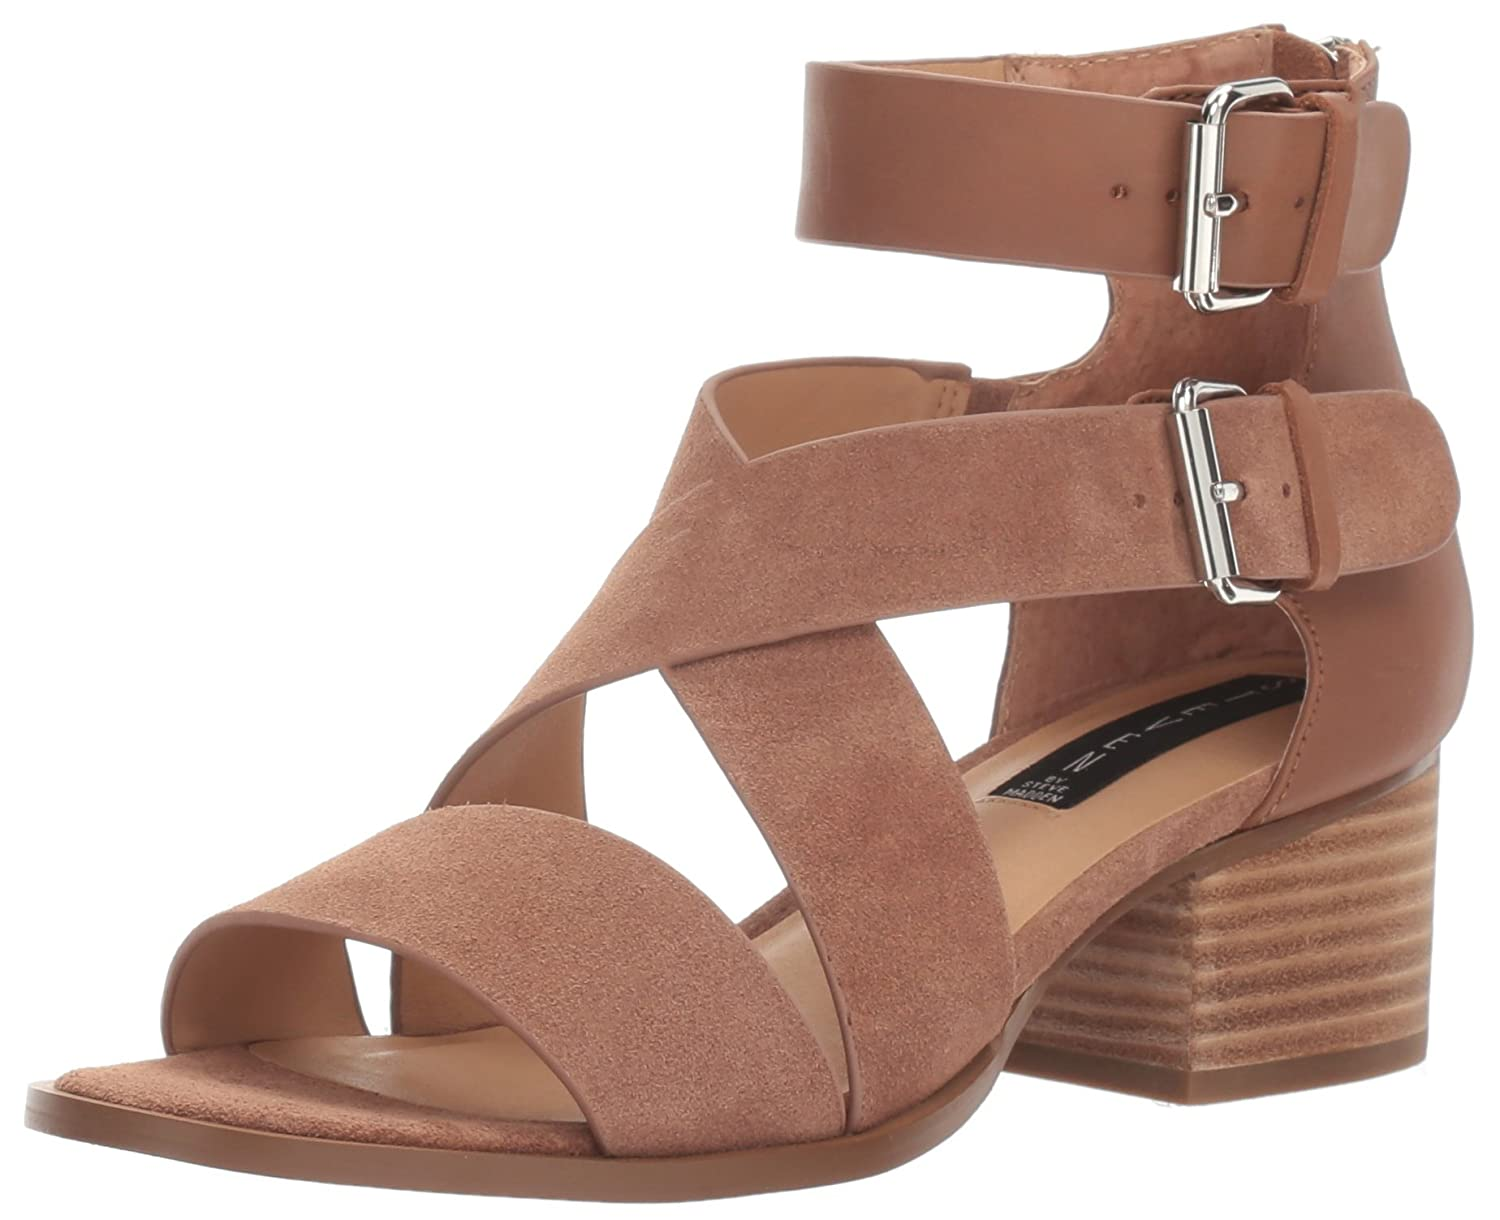 STEVEN by Steve Madden Women's Sandal Elinda Dress Sandal Women's B01LXG9J1T Heeled ff04f8